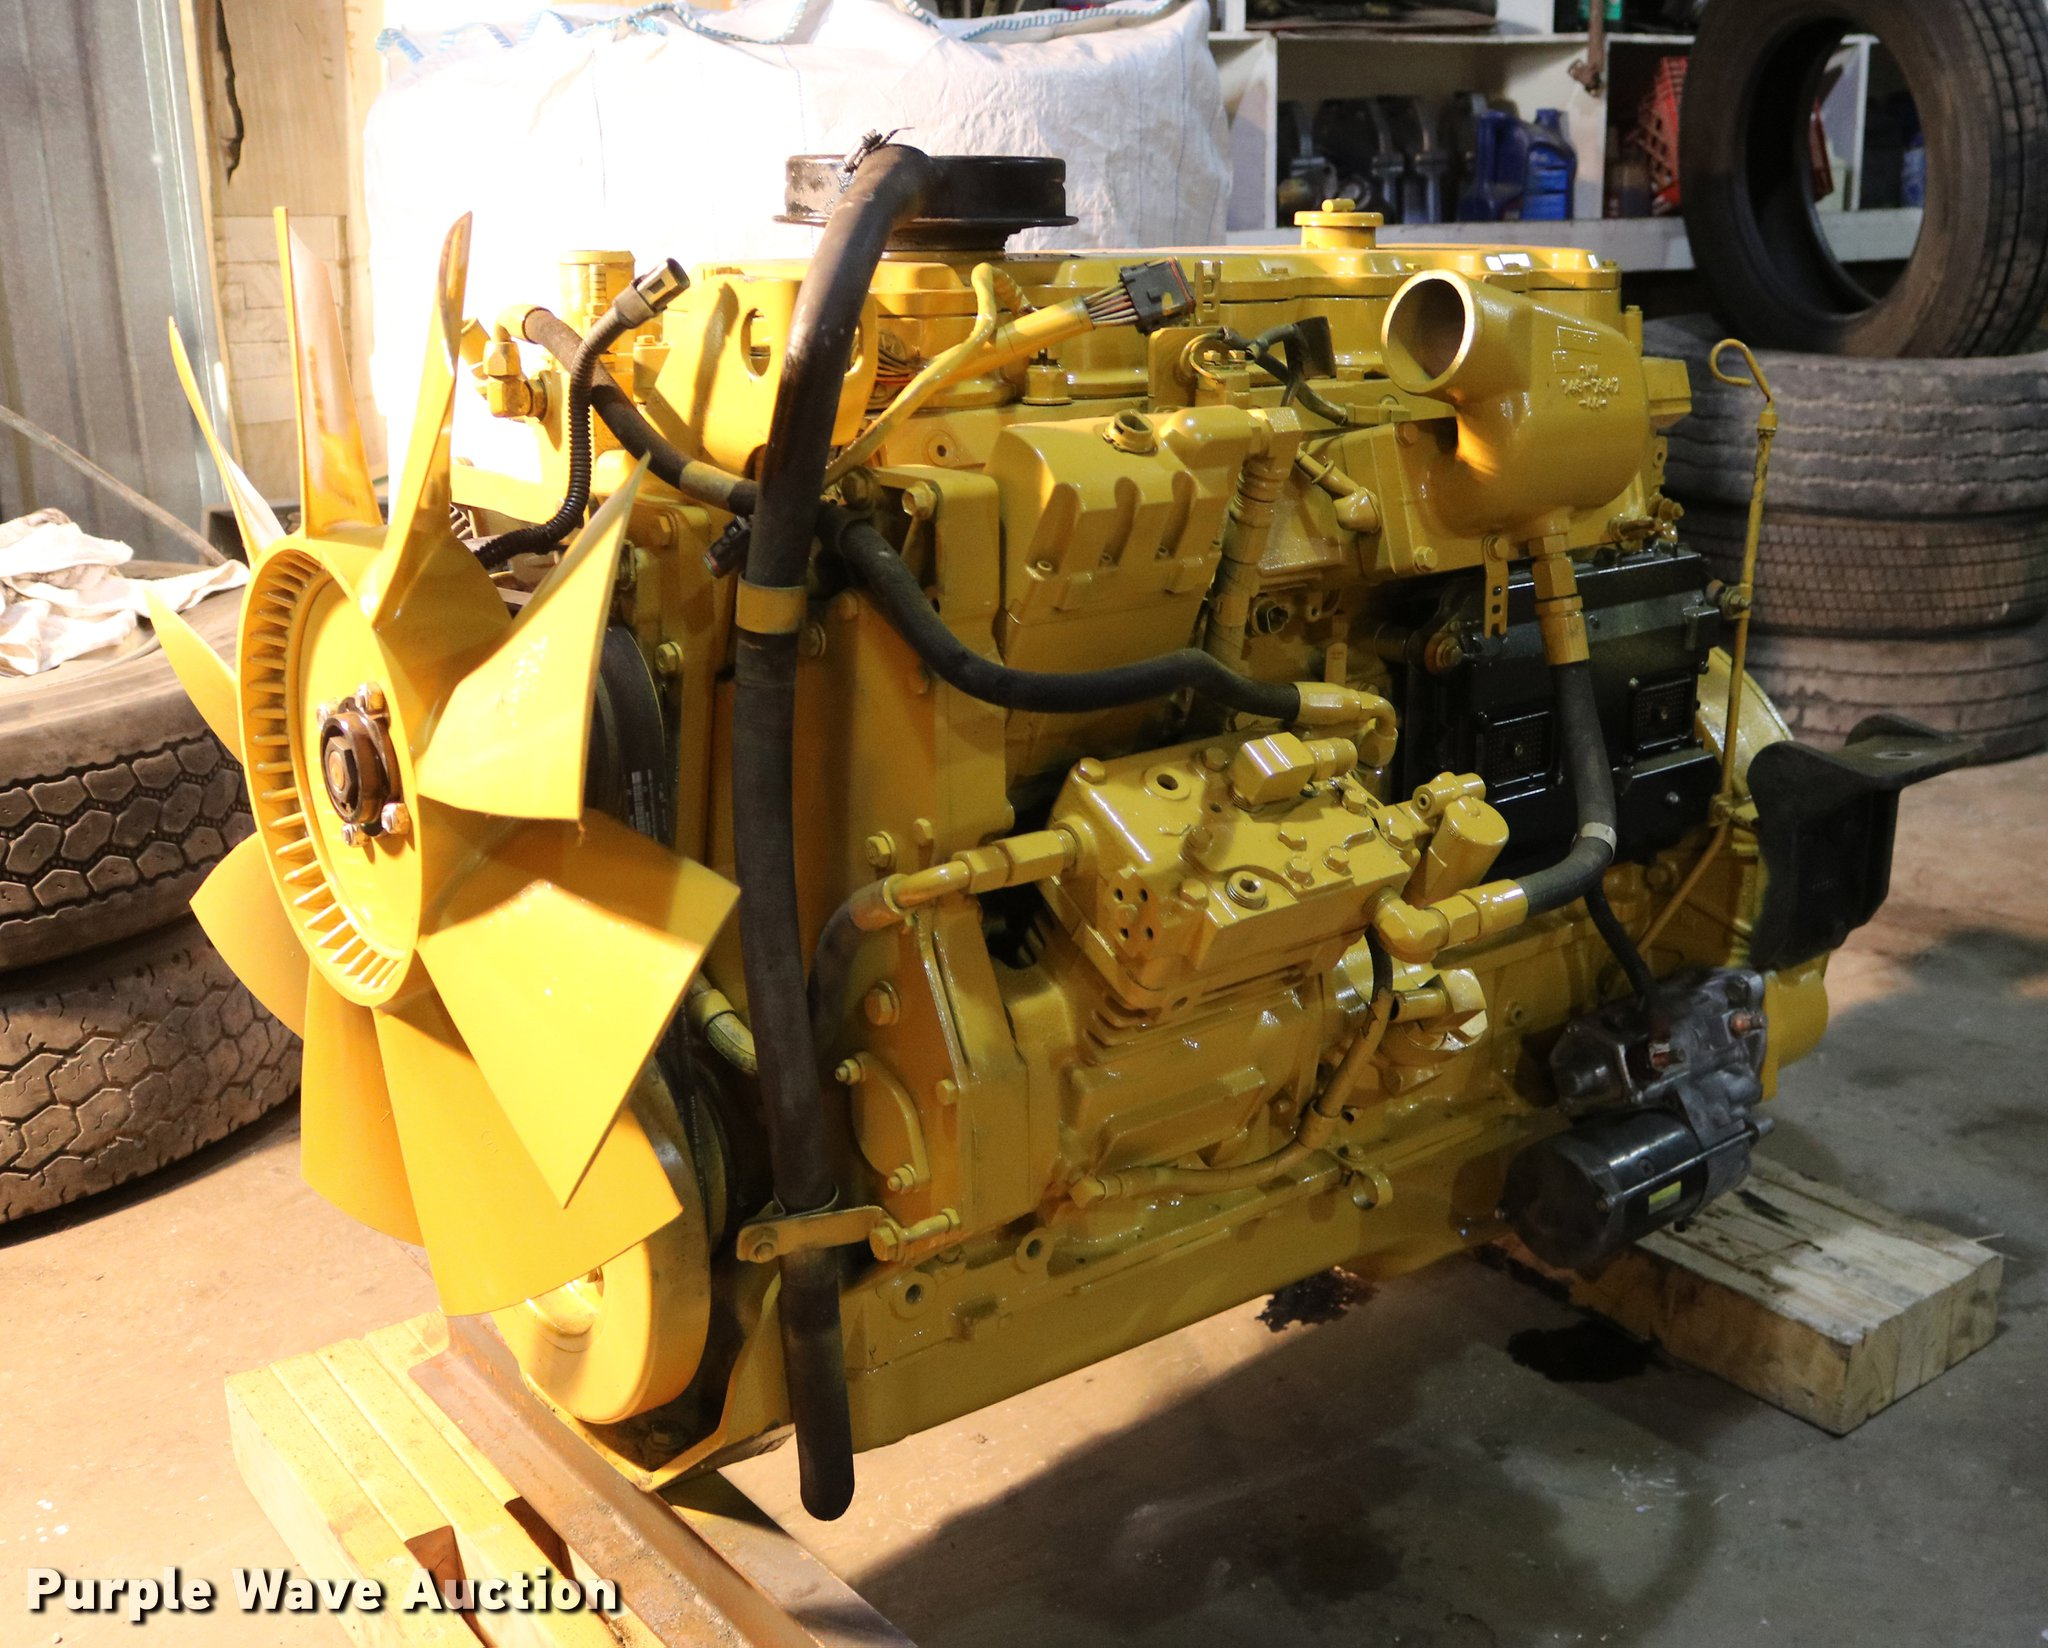 EH9616 image for item EH9616 Caterpillar 3126 7.2L turbo diesel engine